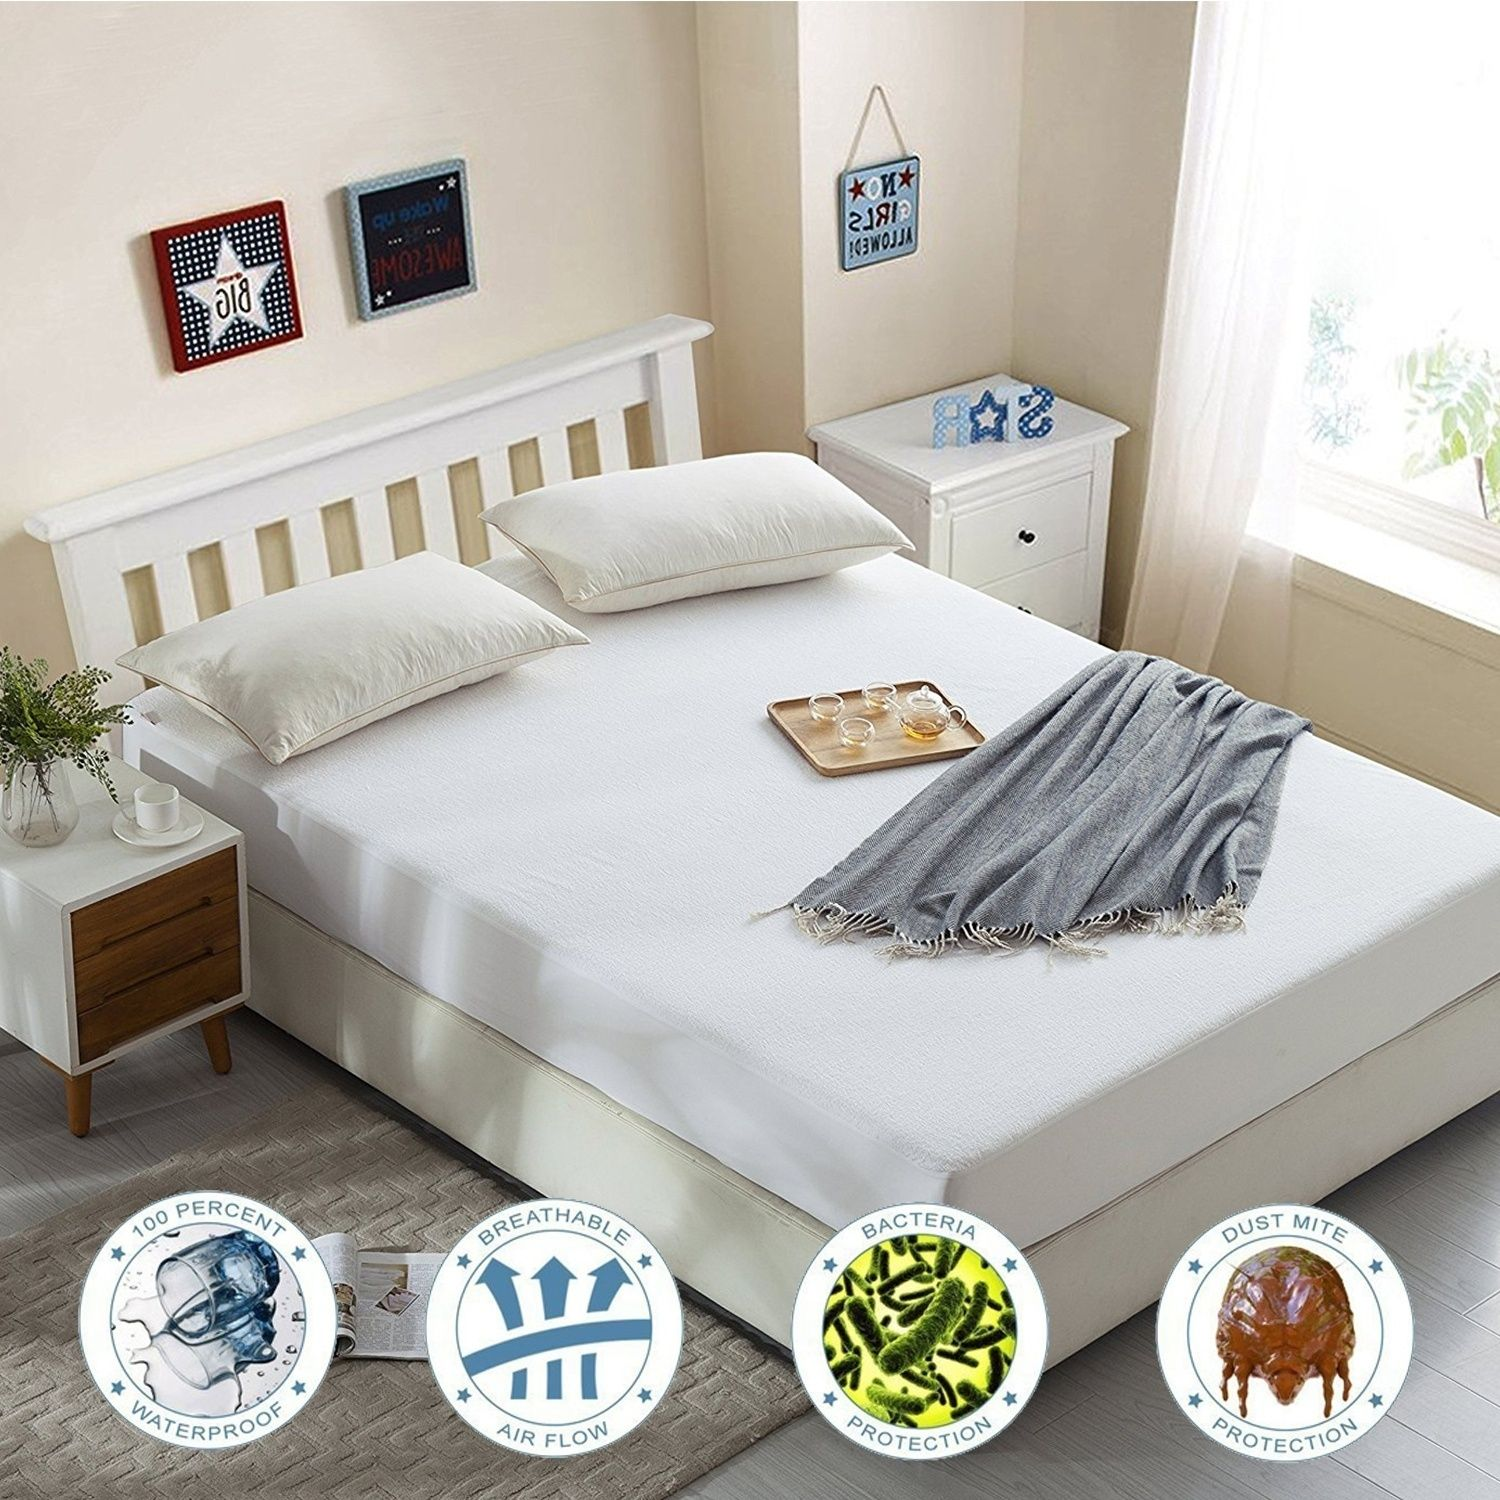 King Size Mattress Protector 100 Waterproof Breathable